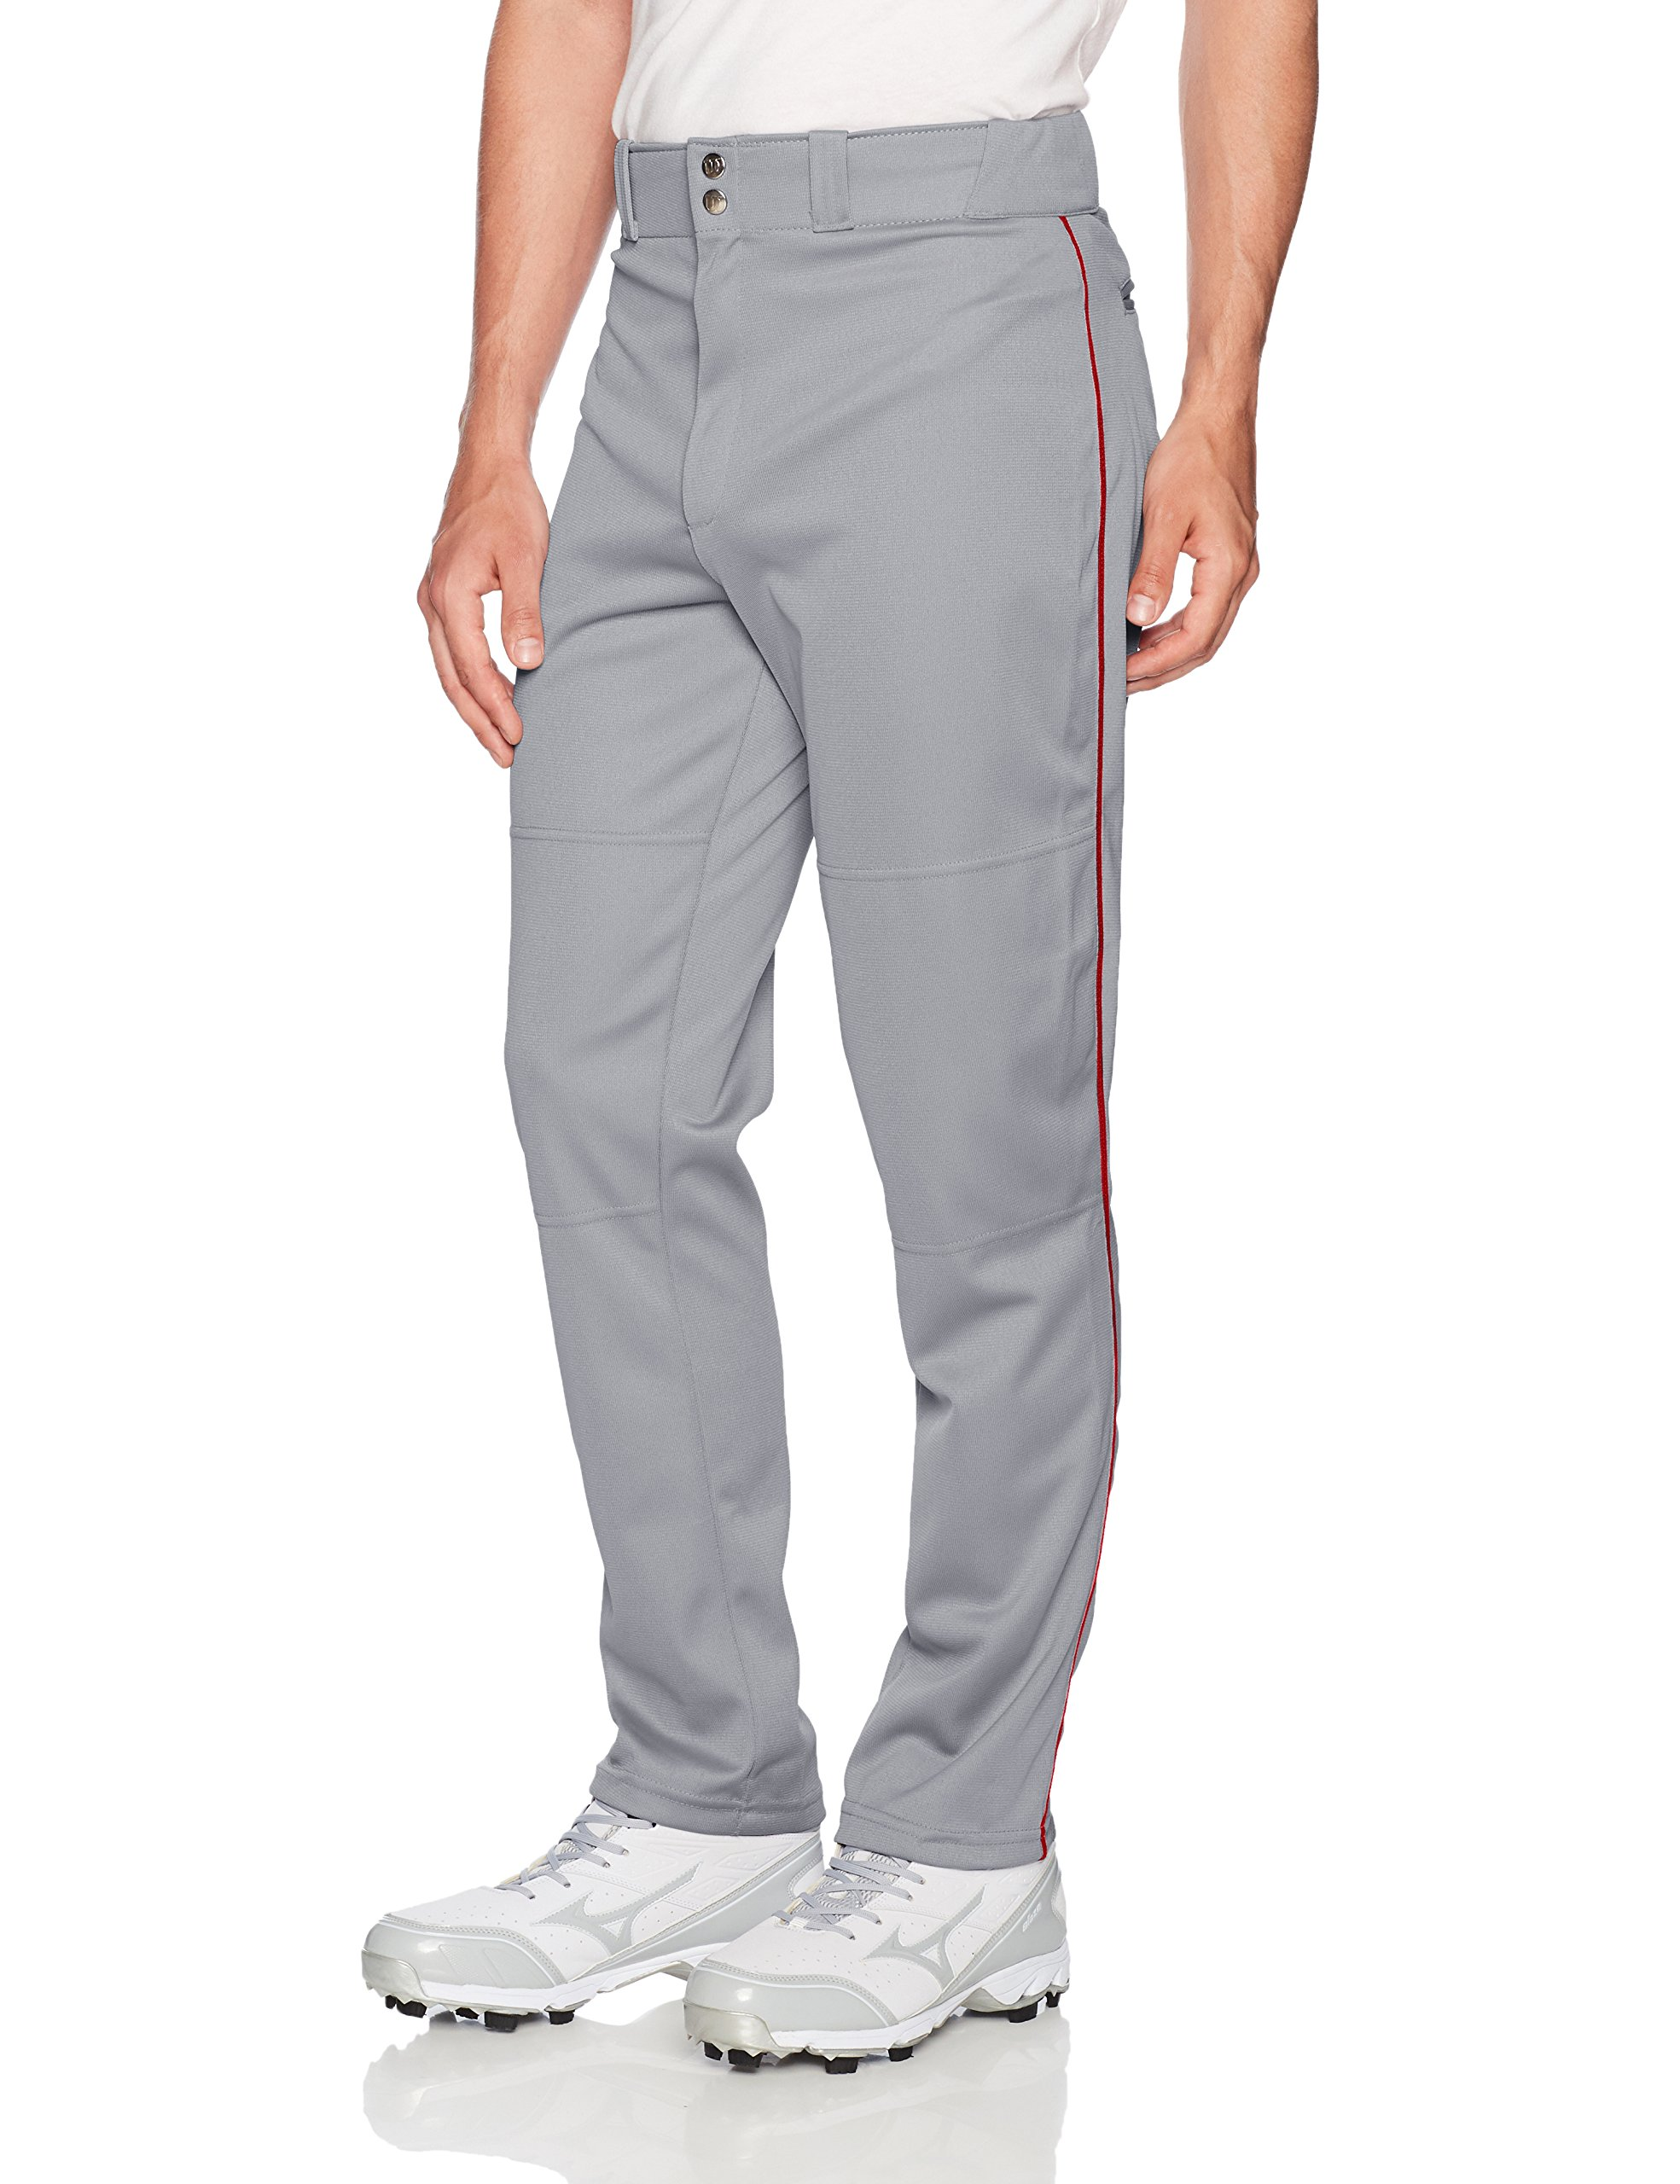 Wilson Men's Classic Relaxed Fit Piped Baseball Pant, Grey/Scarlet, X-Large by Wilson